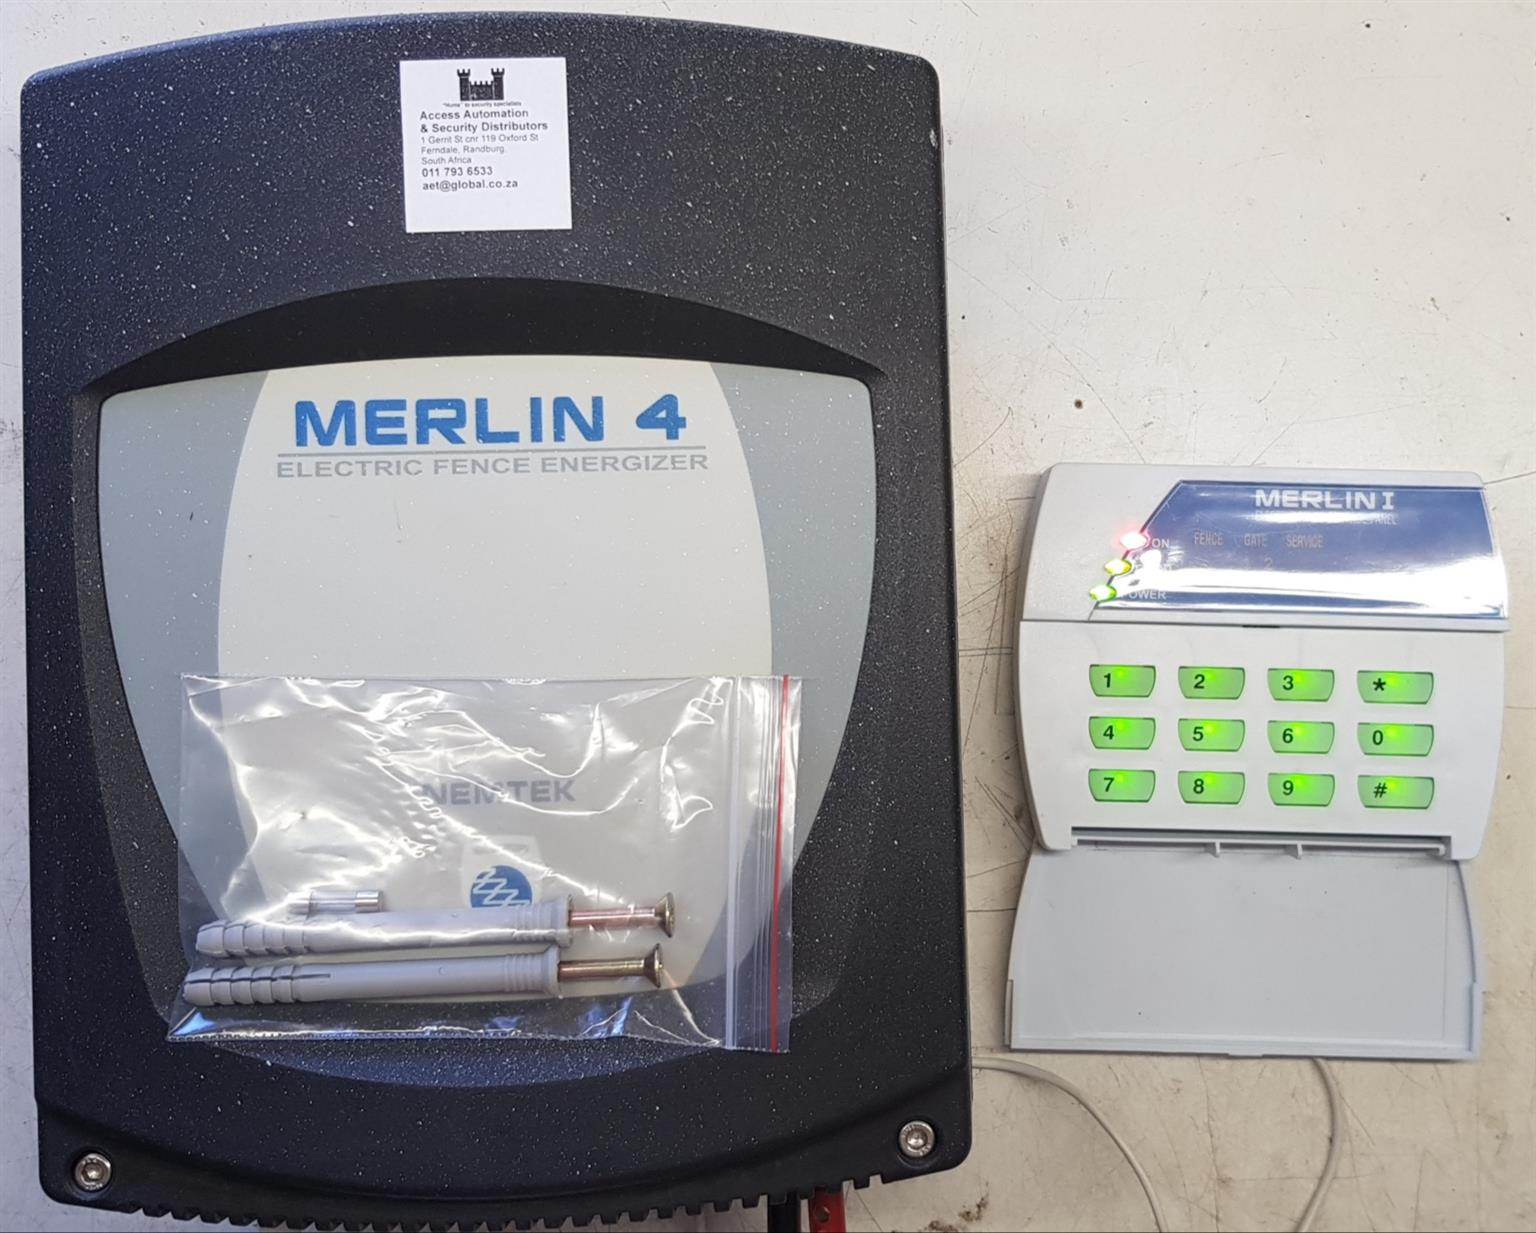 Nemtek Merlin 4 with Keypad Electric Fence Energizer